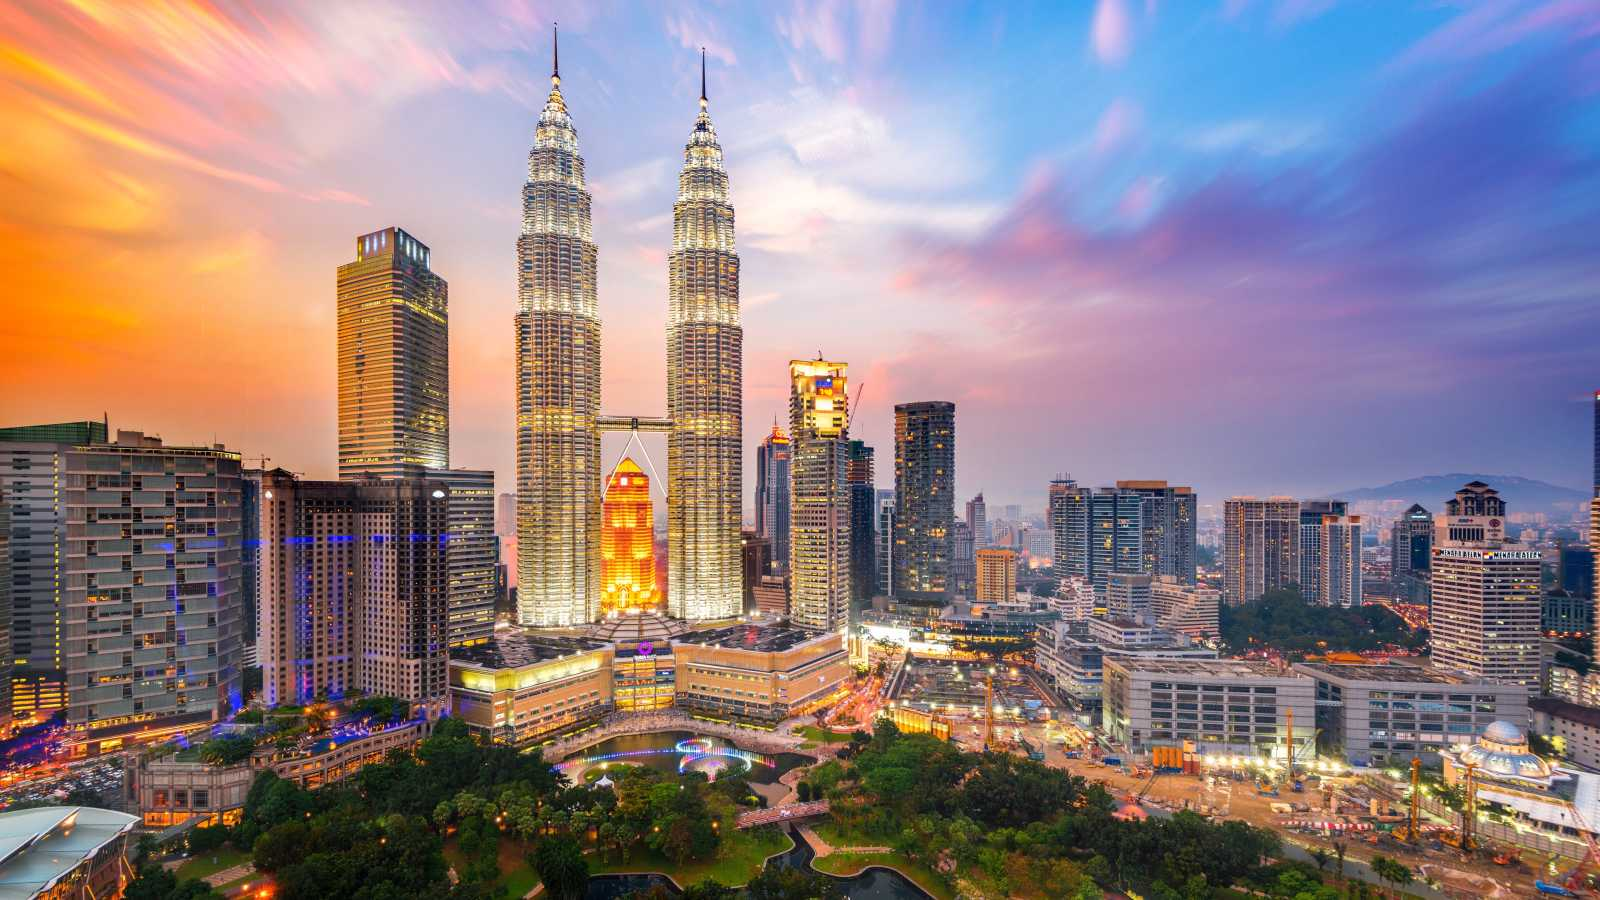 Plan a visit to Kuala Lumpur for your Malaysia trip